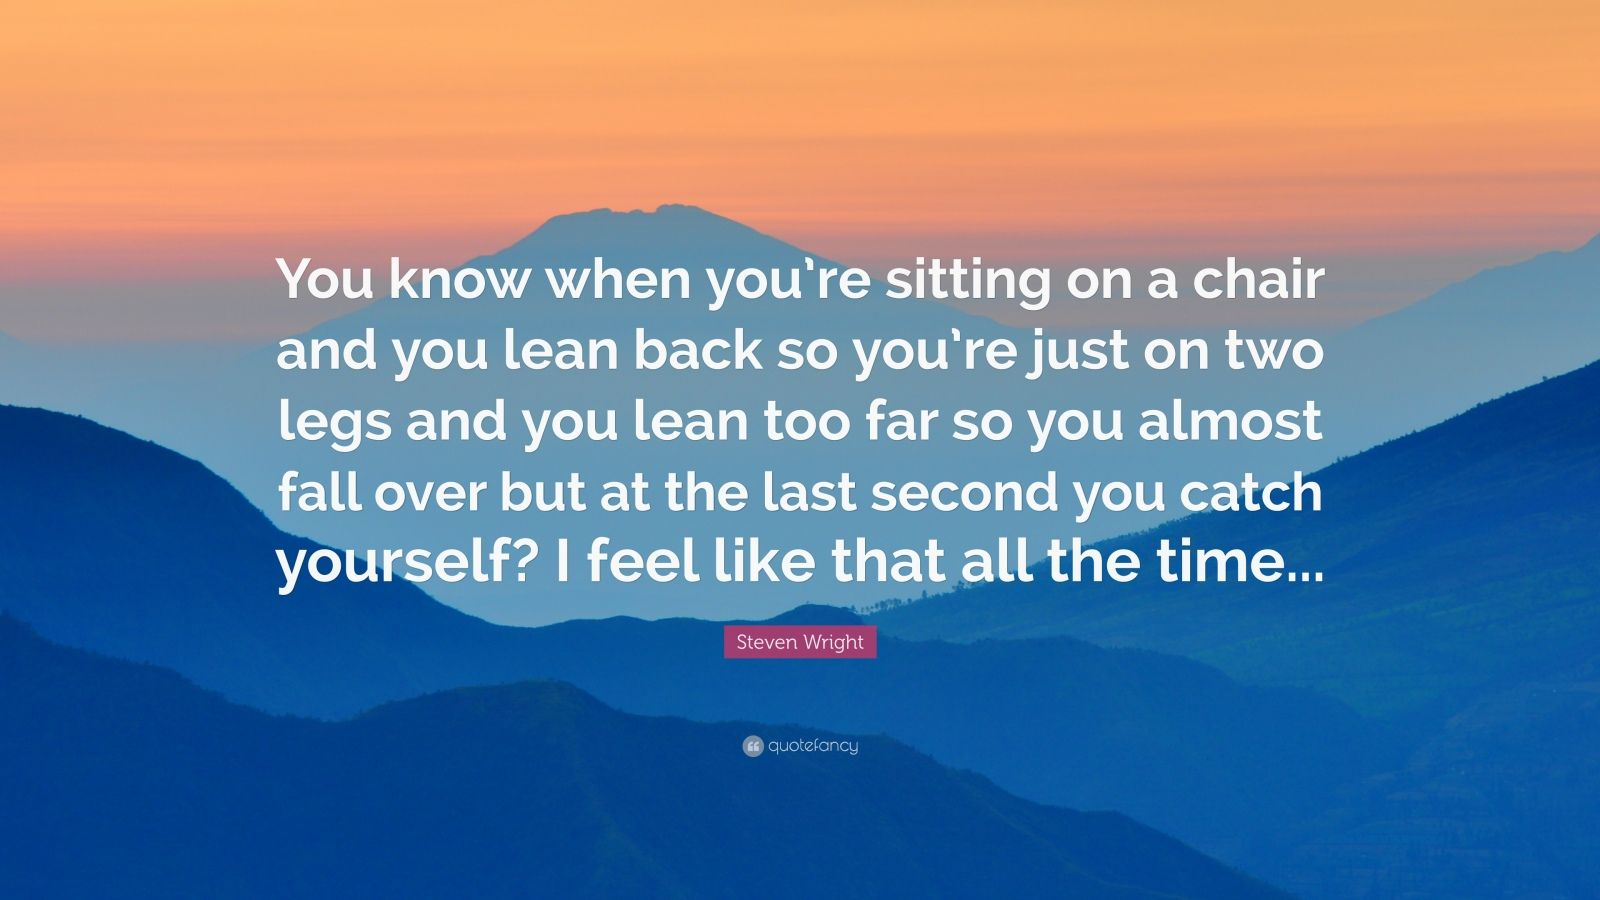 """Steven Wright Quote: """"You know when you're sitting on a chair and you lean back so you're just on two legs and you lean too far so you almost fall over but at the last second you catch yourself? I feel like that all the time..."""""""